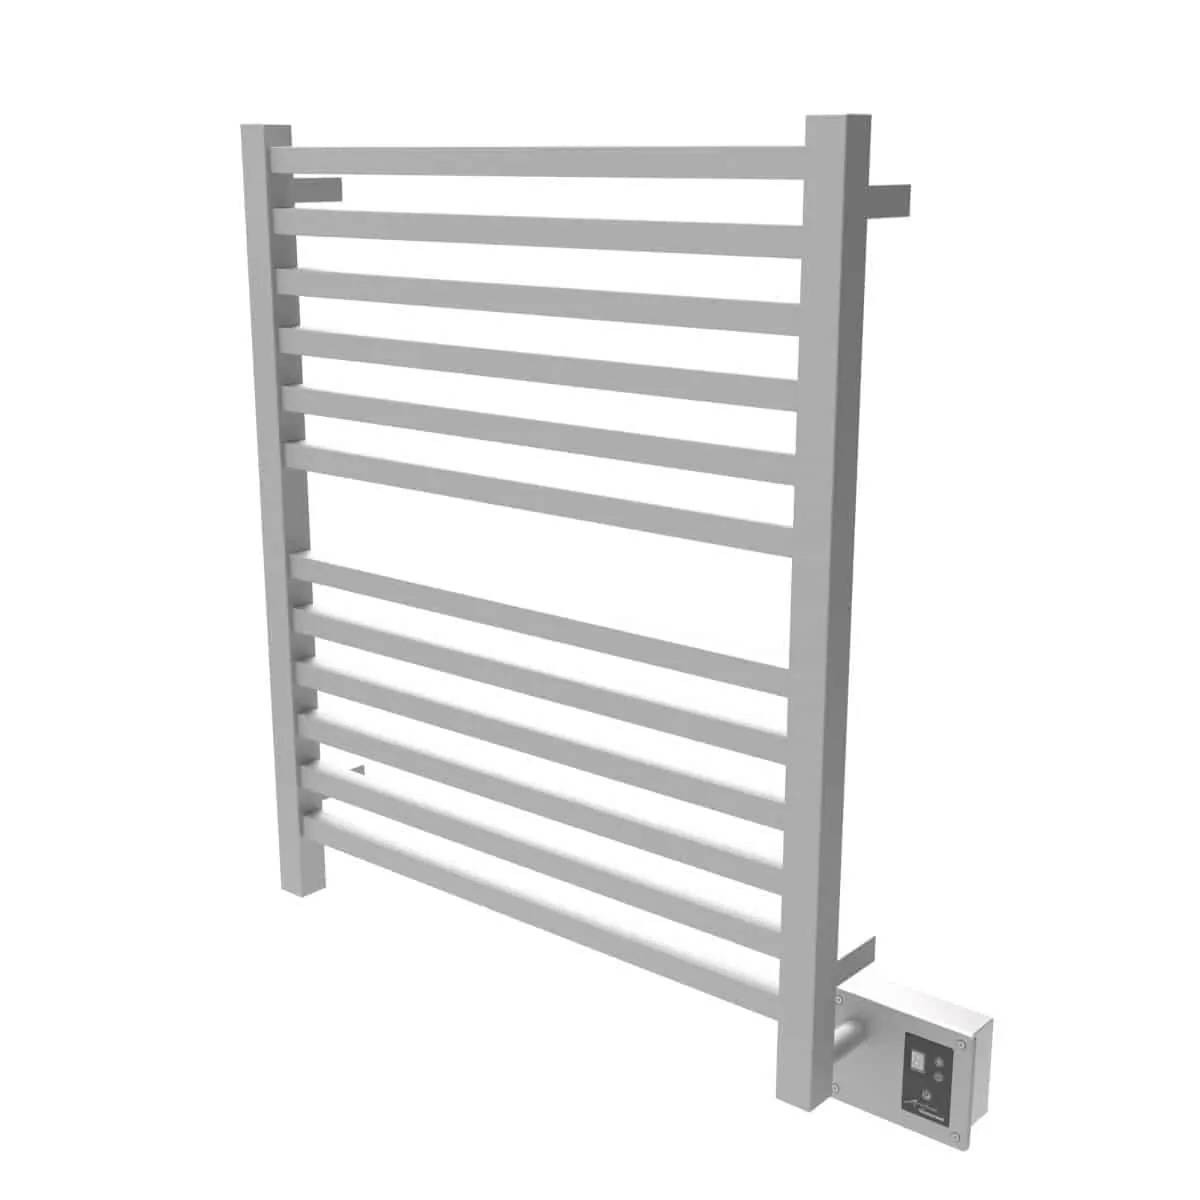 Amba Q2833B Quadro Heated Towel Rack - Brushed